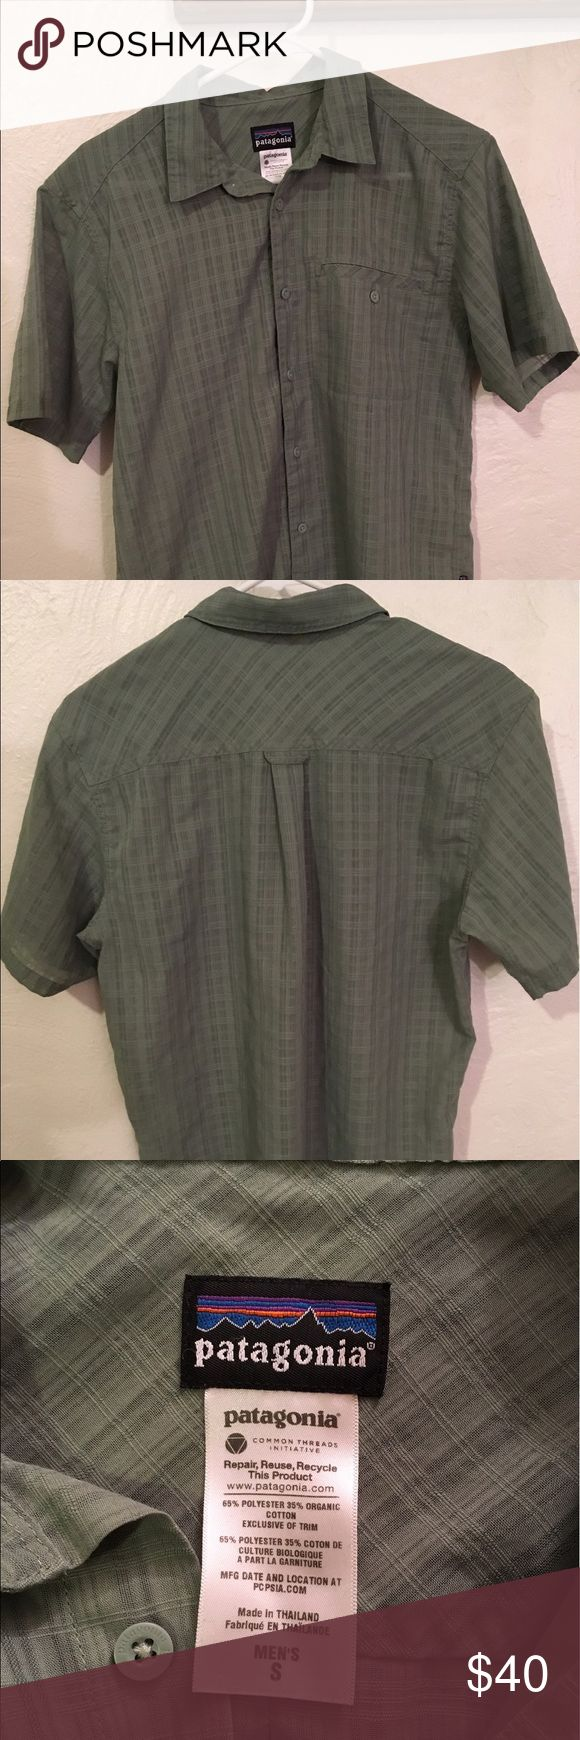 """Patagonia Men's Puckerware Shirt, Size Small Patagonia Men's Puckerware Shirt, Size Small. Lightweight, textured recycled polyester and organic cotton blend lifts away from skin and wicks moisture, even in humidity! Left-chest patch pocket, straight hem with side vents. Pre-owned but in excellent condition. Made in Thailand.  Approximate measurements are as follows: Armpit-to-armpit = 19.5"""". Collar to coat-tail = 28"""". Patagonia Shirts Casual Button Down Shirts"""